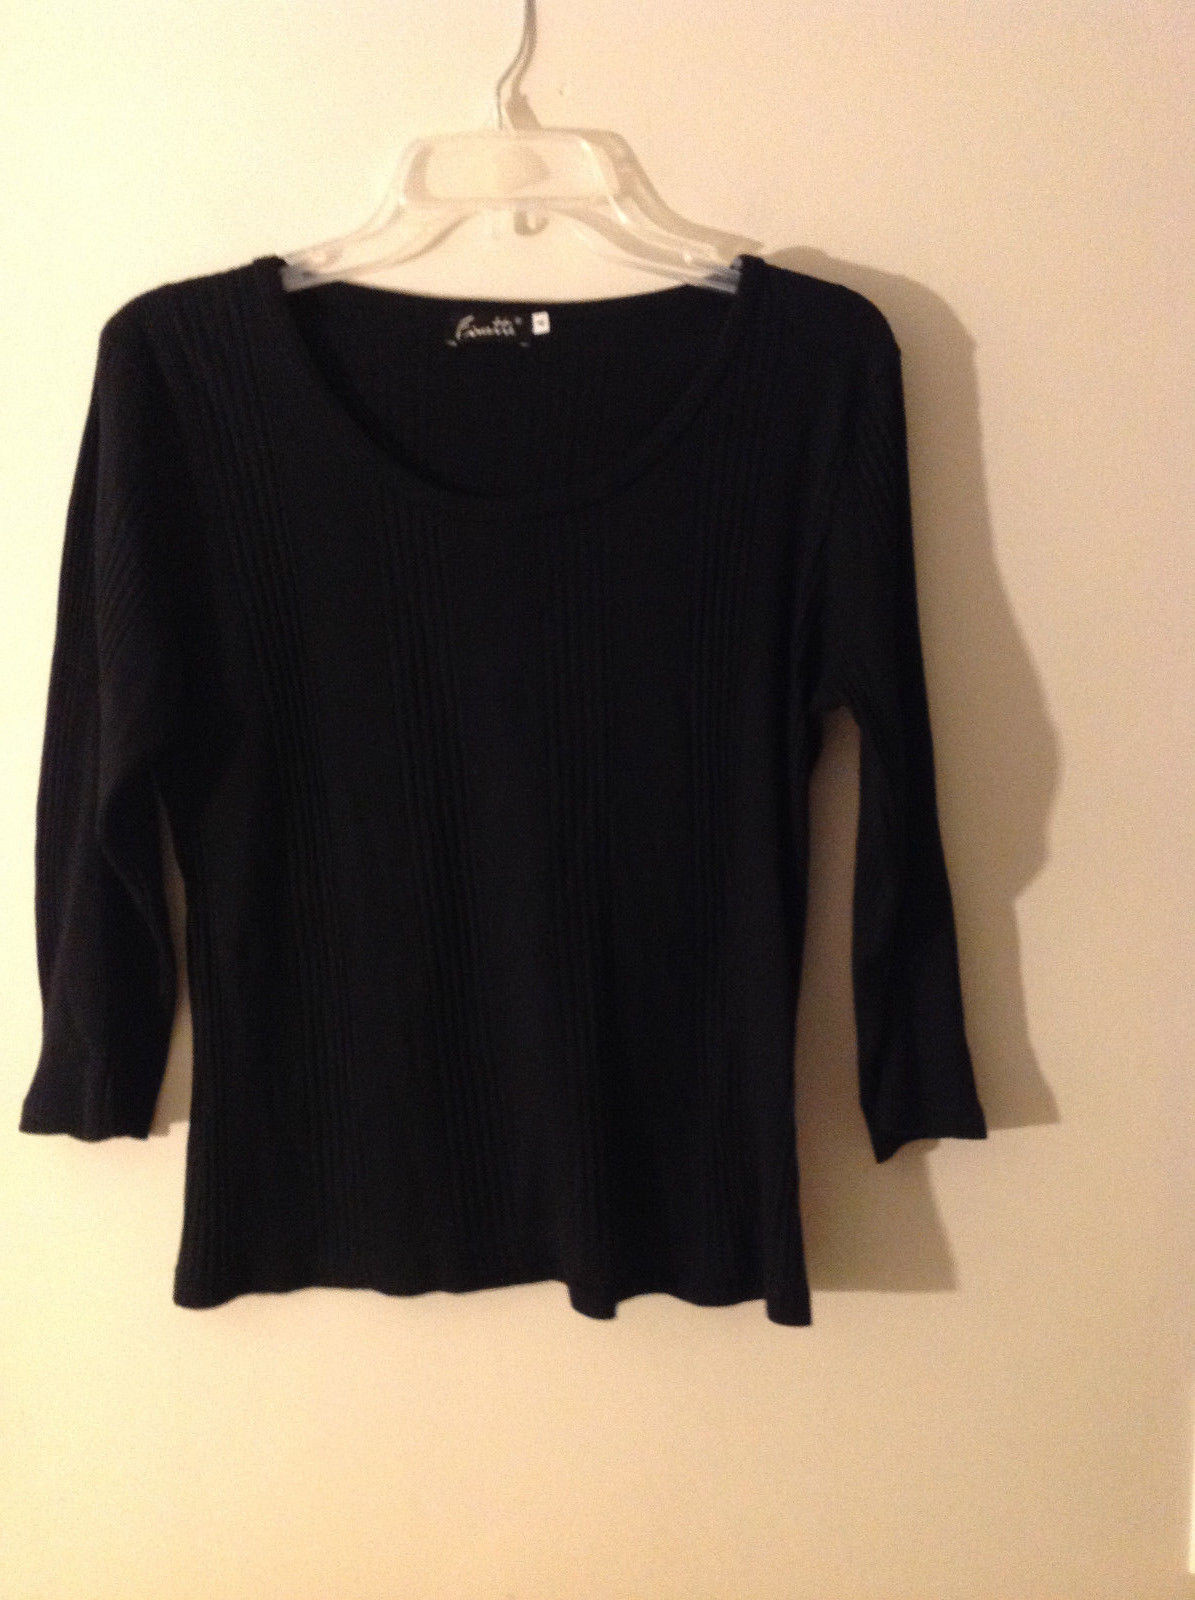 Finette Women's Size 4 Black Sweater Thin Summer Knit 3/4 Sleeves w/ Scoop Neck